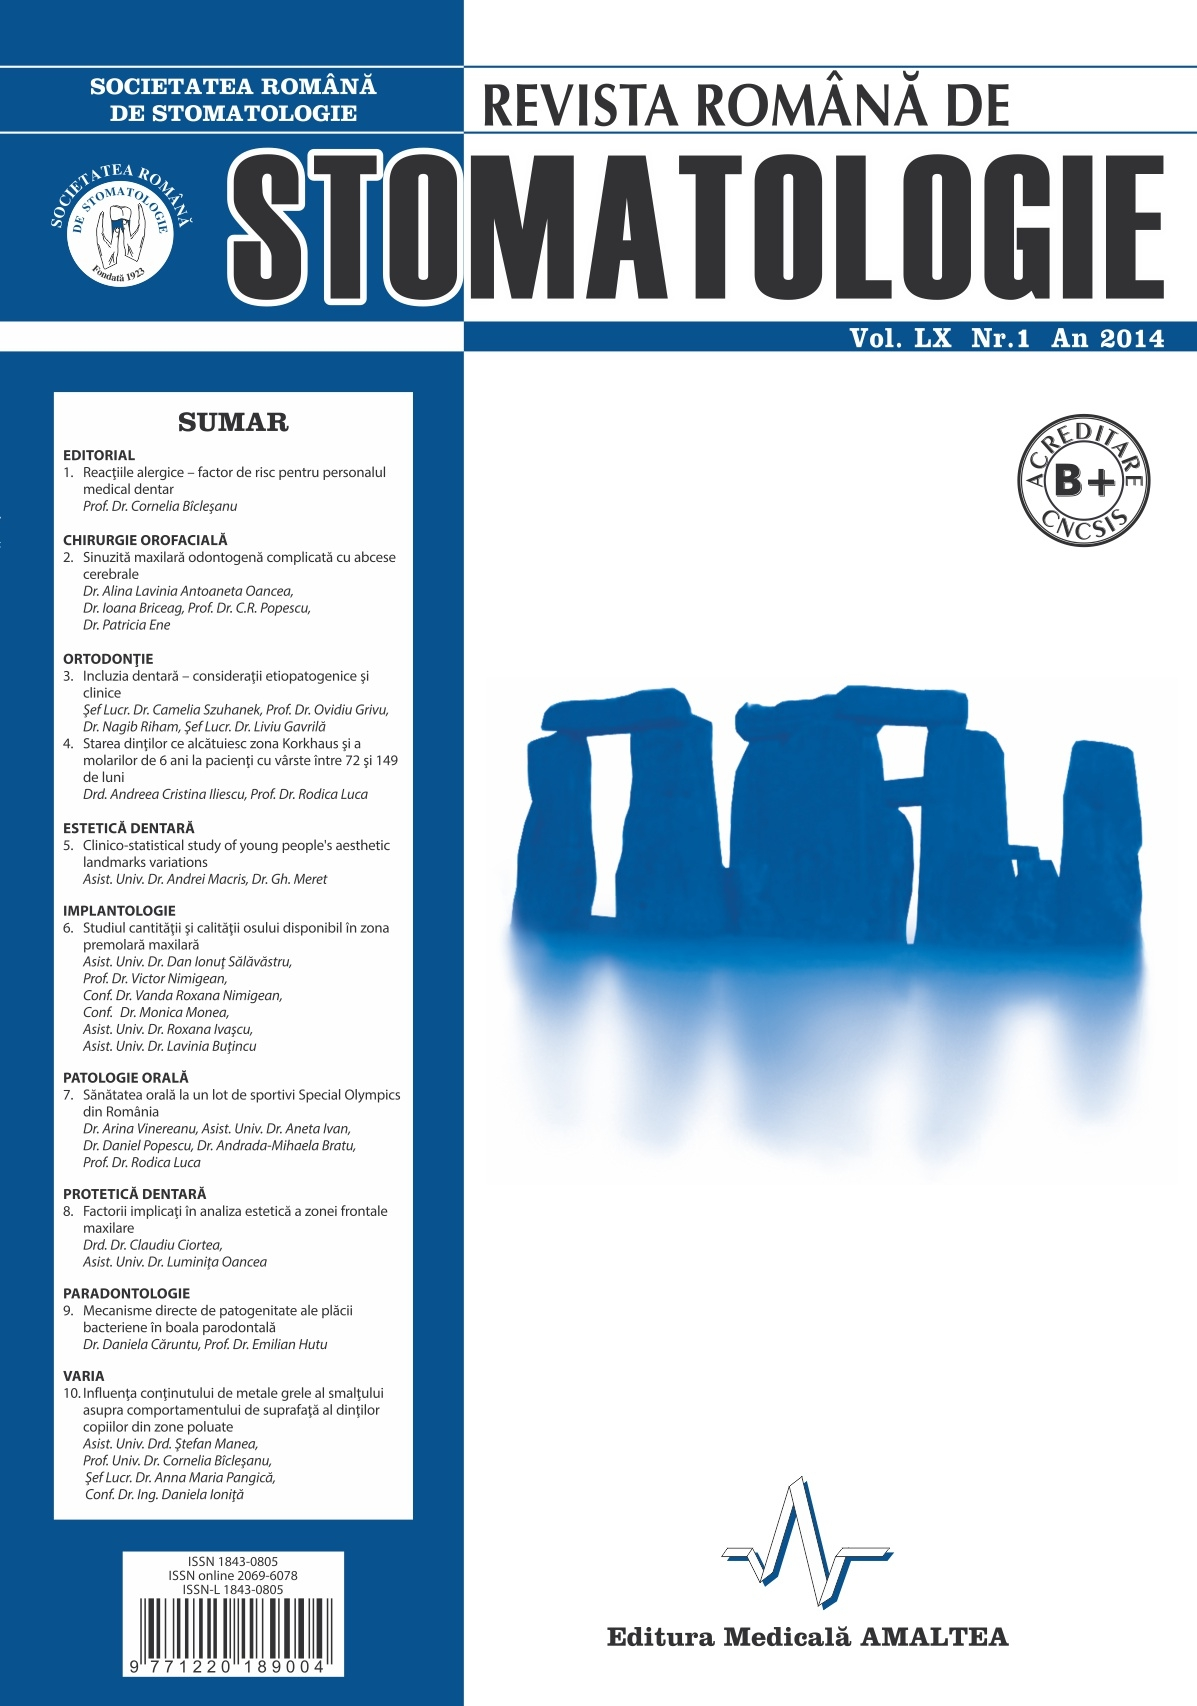 Revista Romana de STOMATOLOGIE - Romanian Journal of Stomatology, Vol. LX, Nr. 1, An 2014